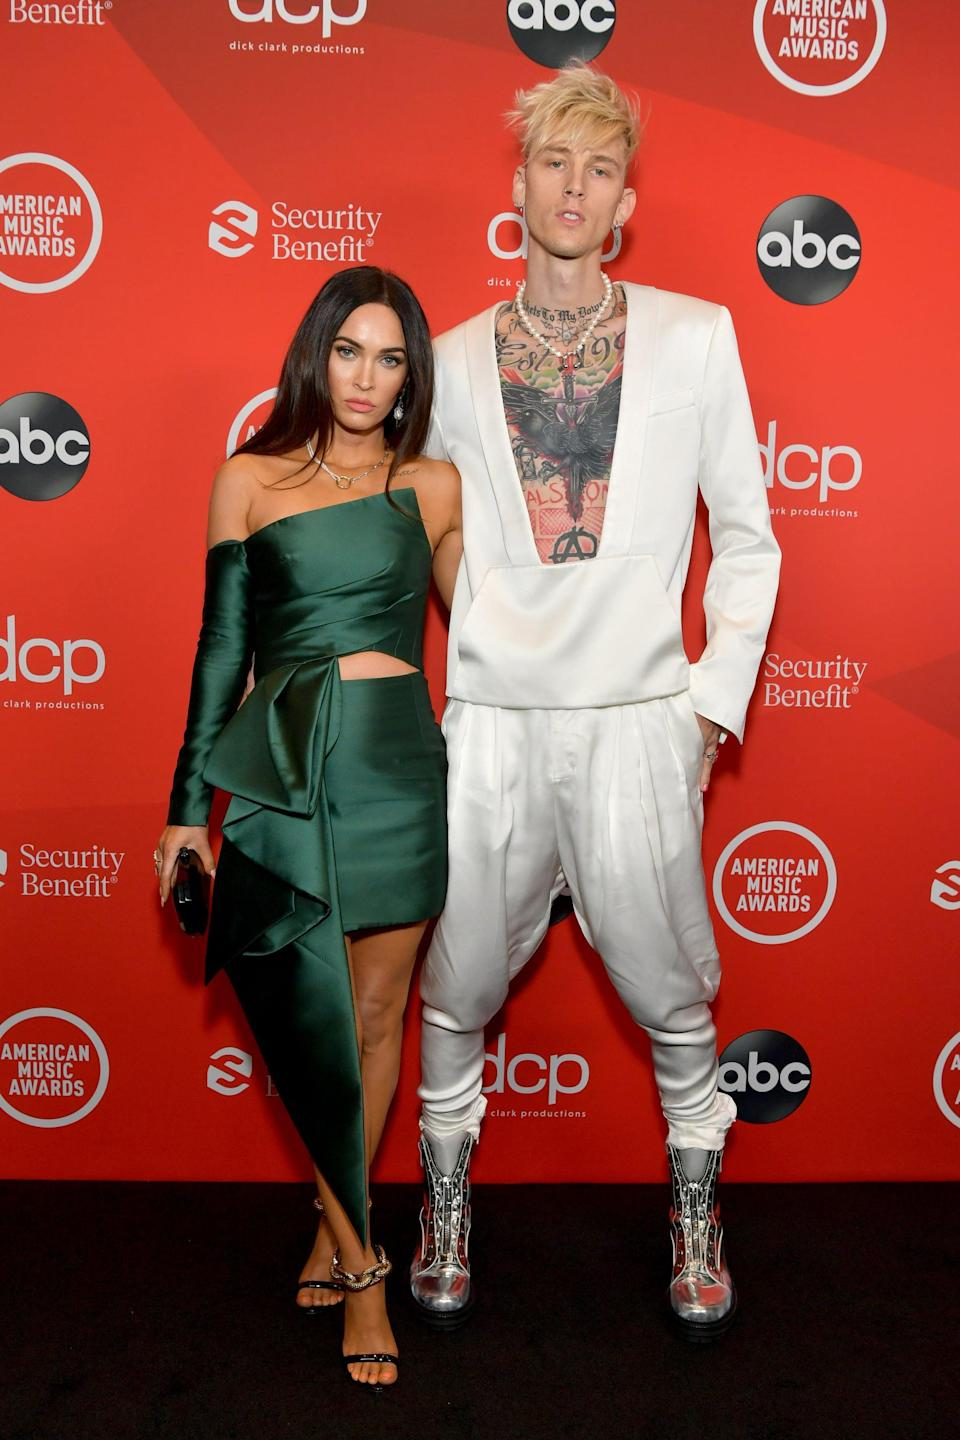 <p>Megan wore an Azzi & Osta look with Tasaki jewels, and Machine Gun Kelly wore a Balmain outfit with silver aviator boots from DSquared2.</p>